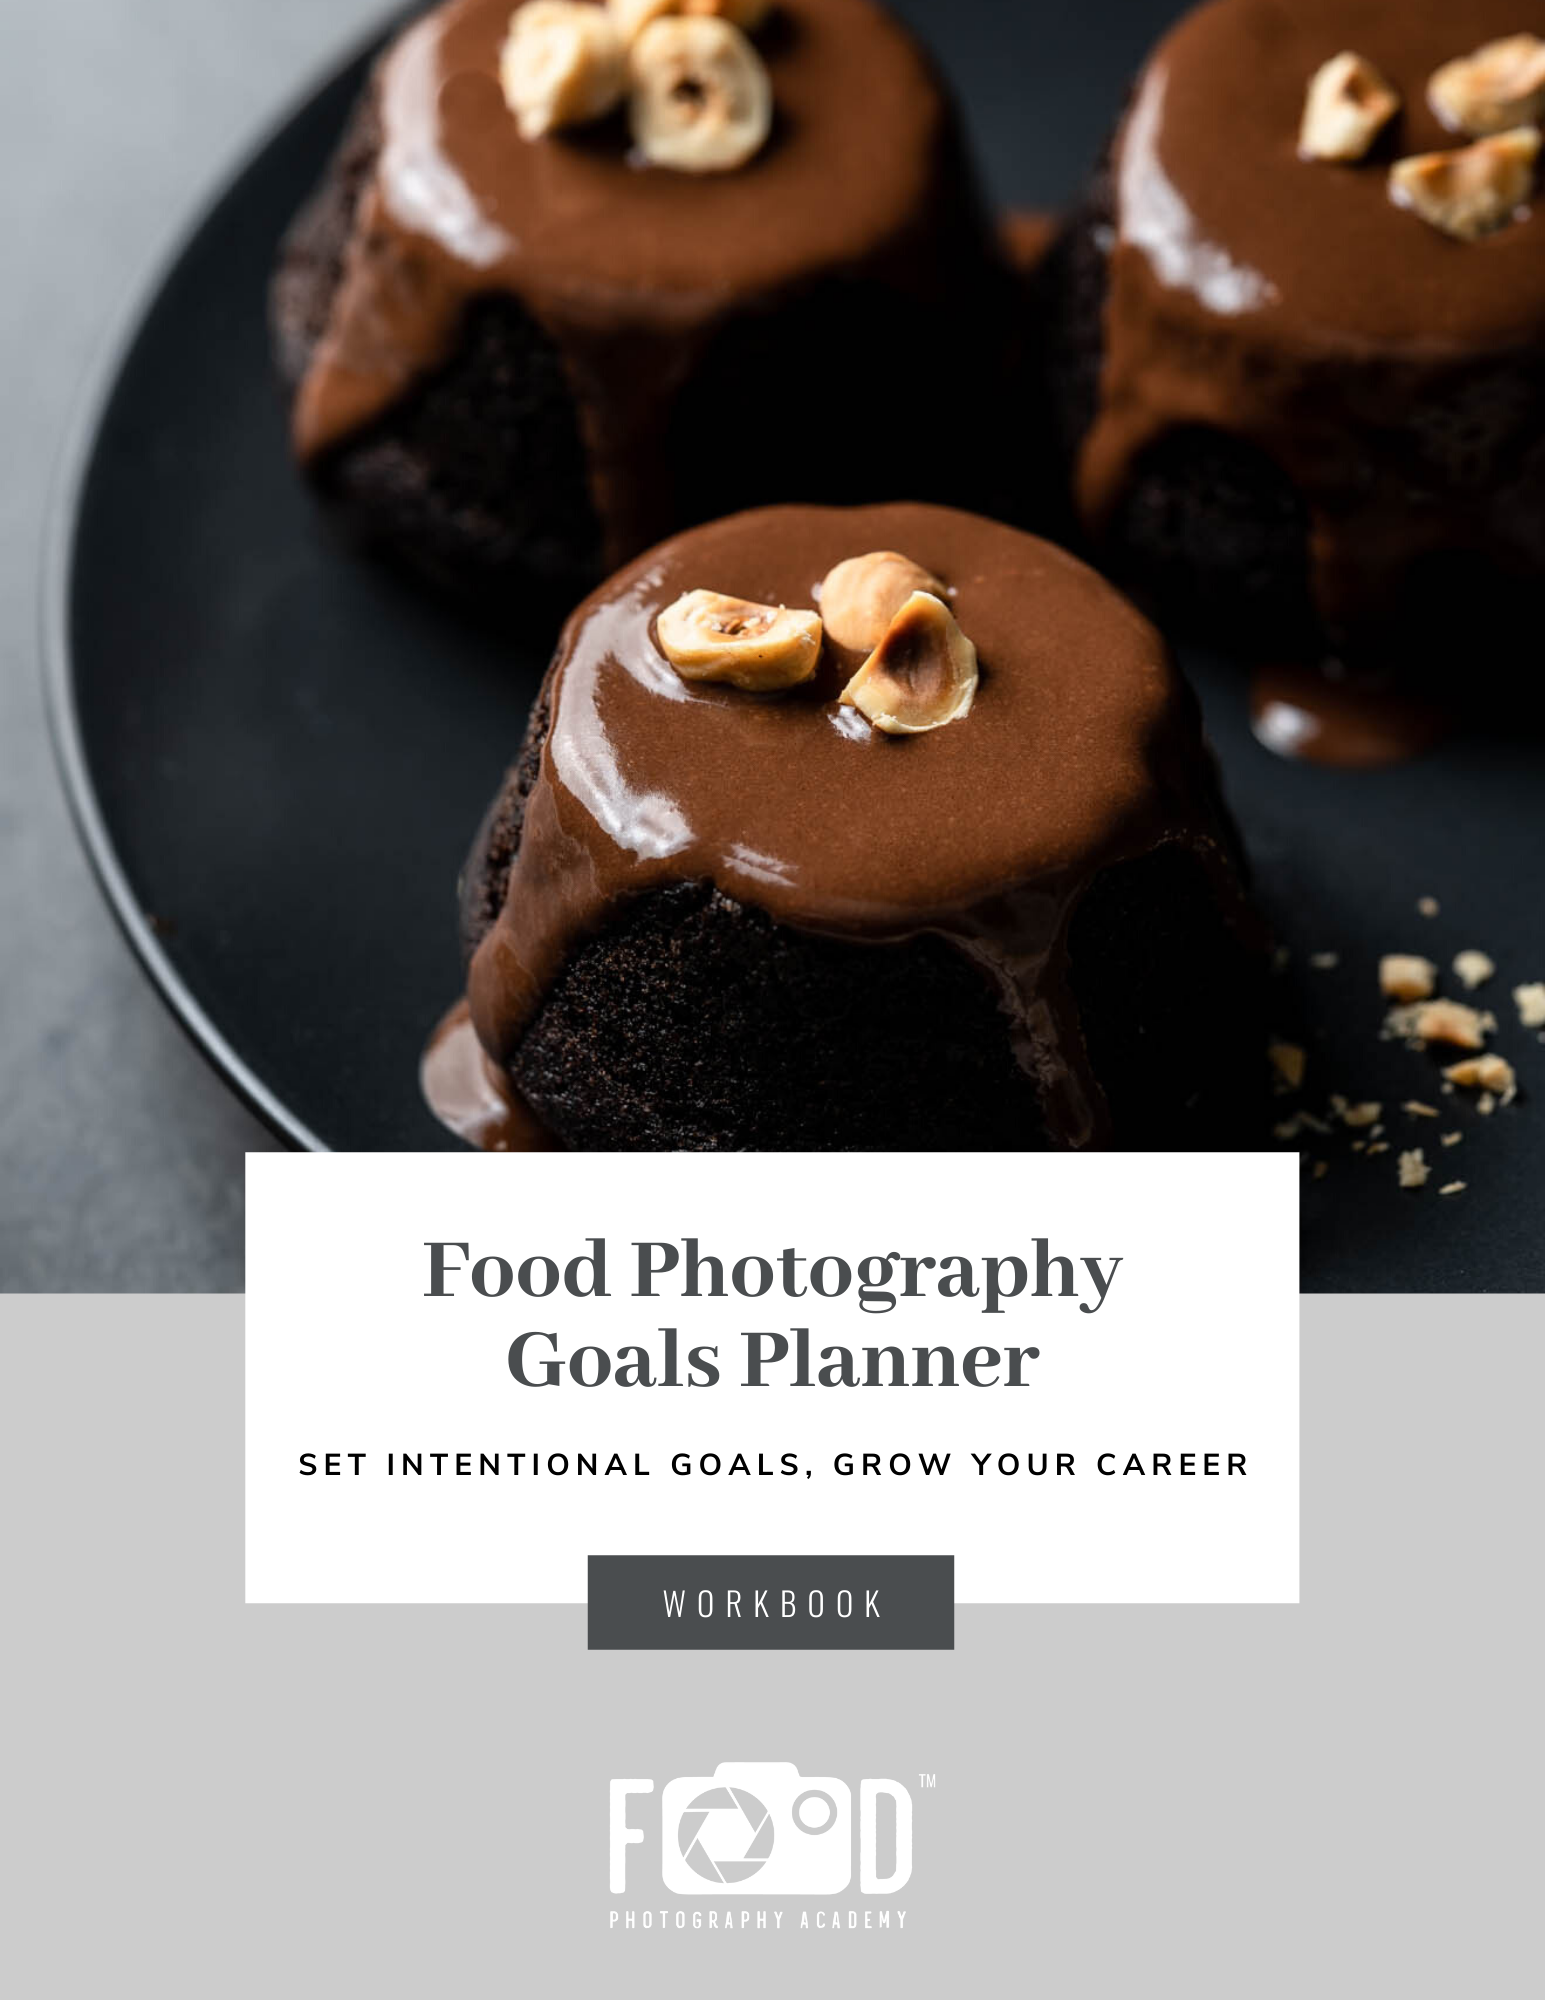 Food Photography Goal Setting Planner